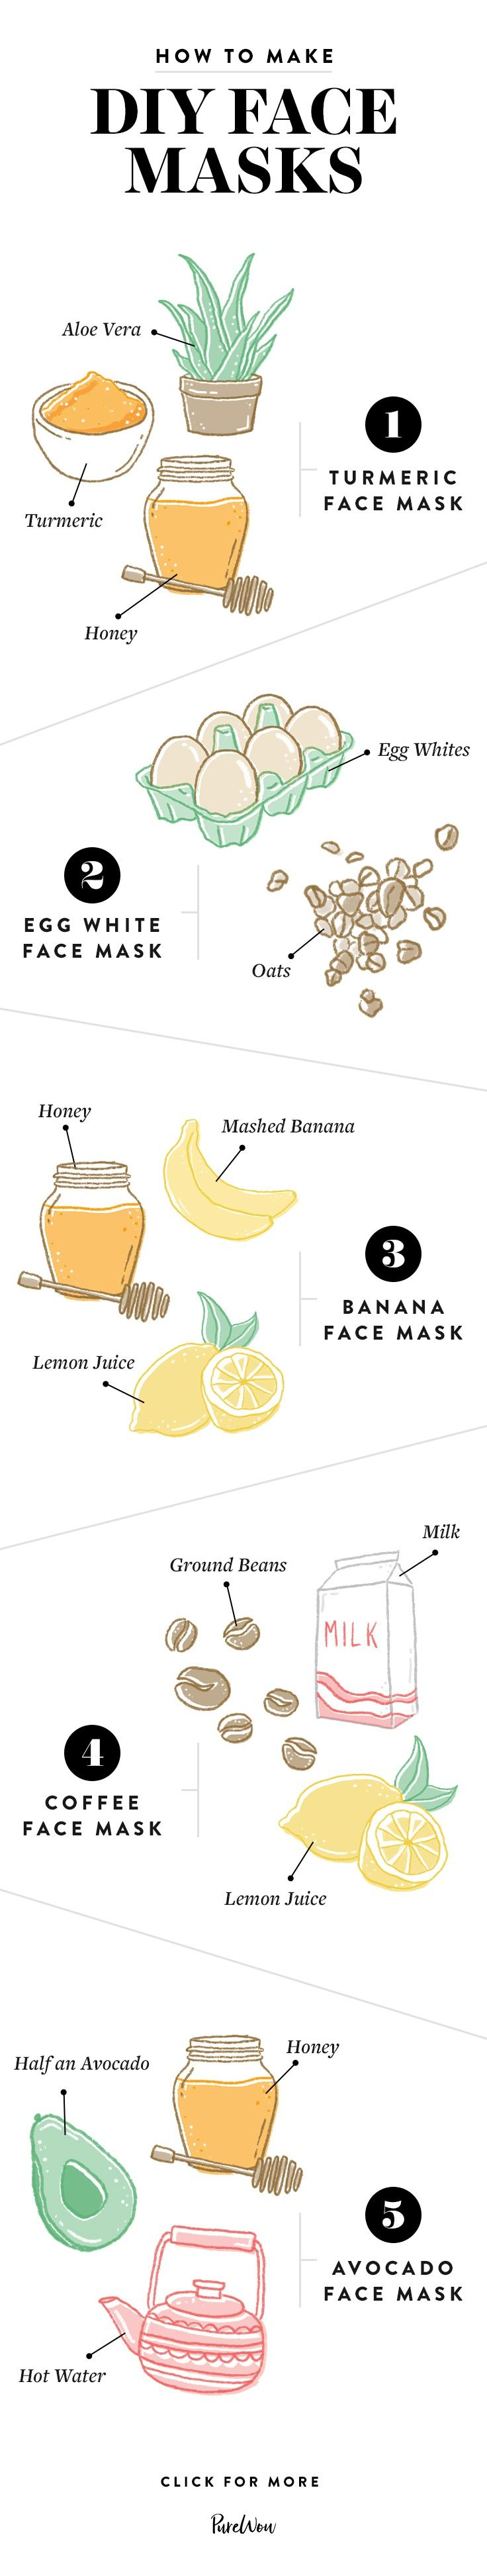 From bananas to coffee beans, your pantry is filled with fresh, skin-loving ingredients. Here's how to make the best DIY face masks at home.